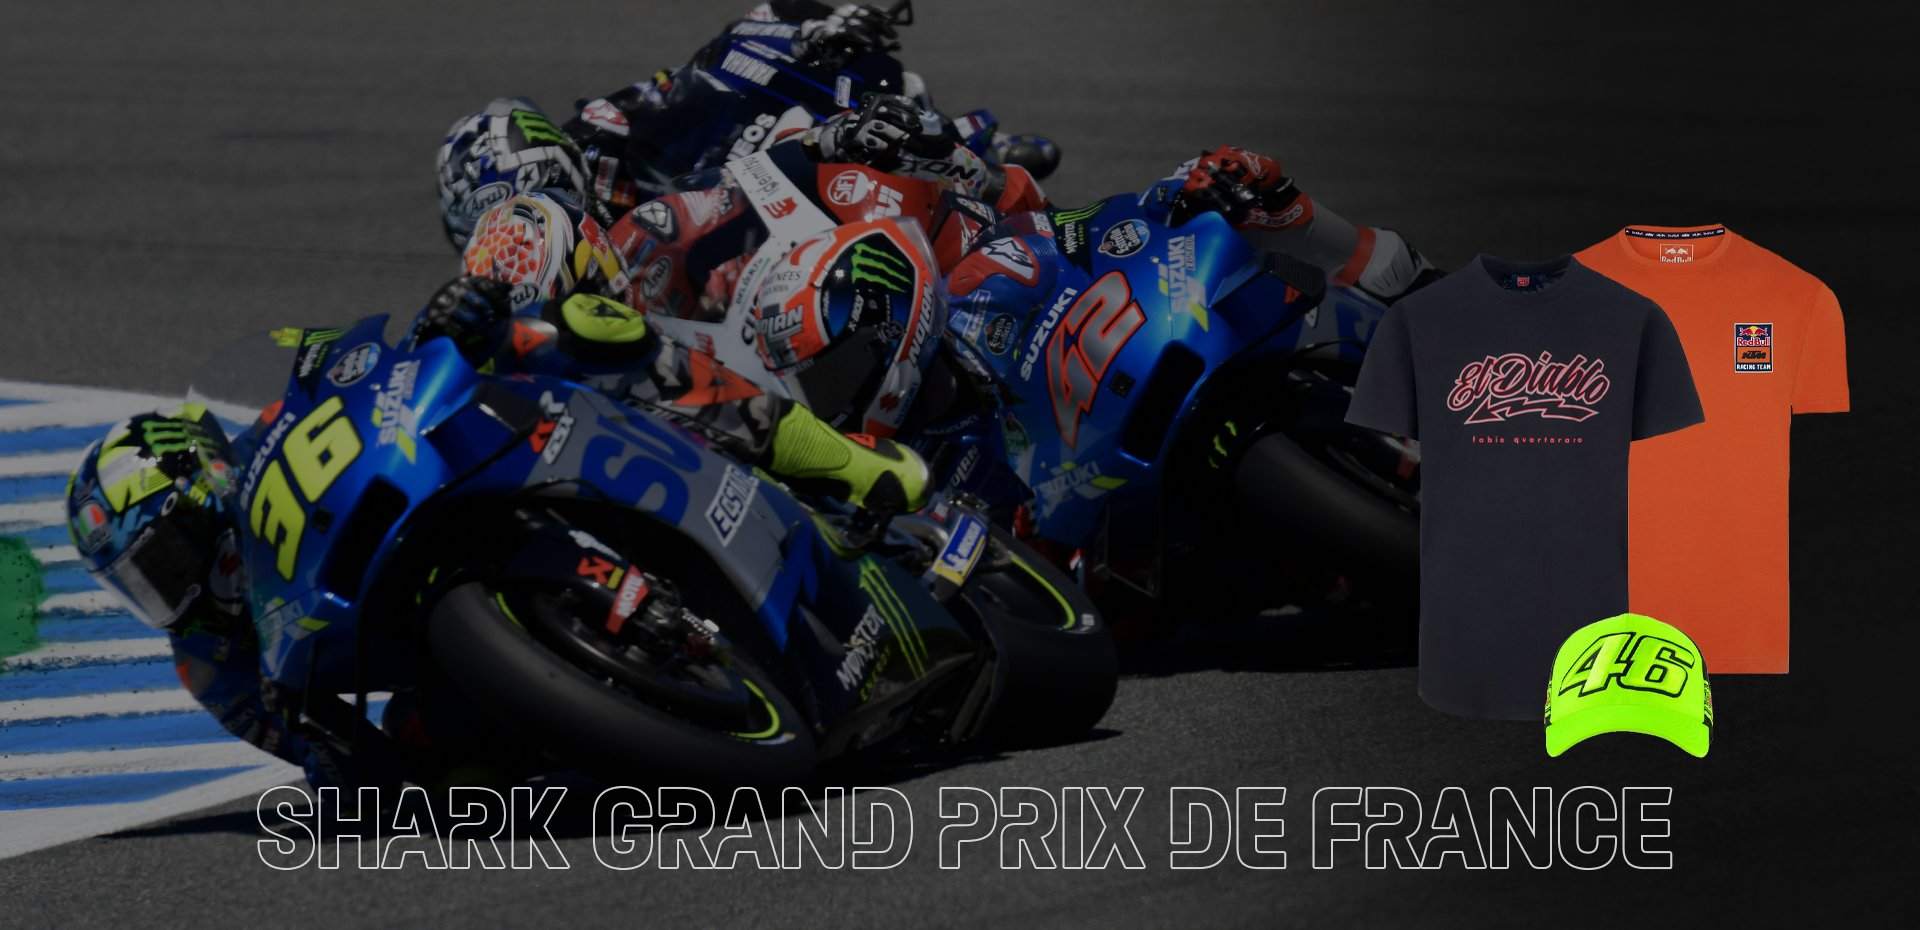 MotoGP™ returns to legendary Le Mans